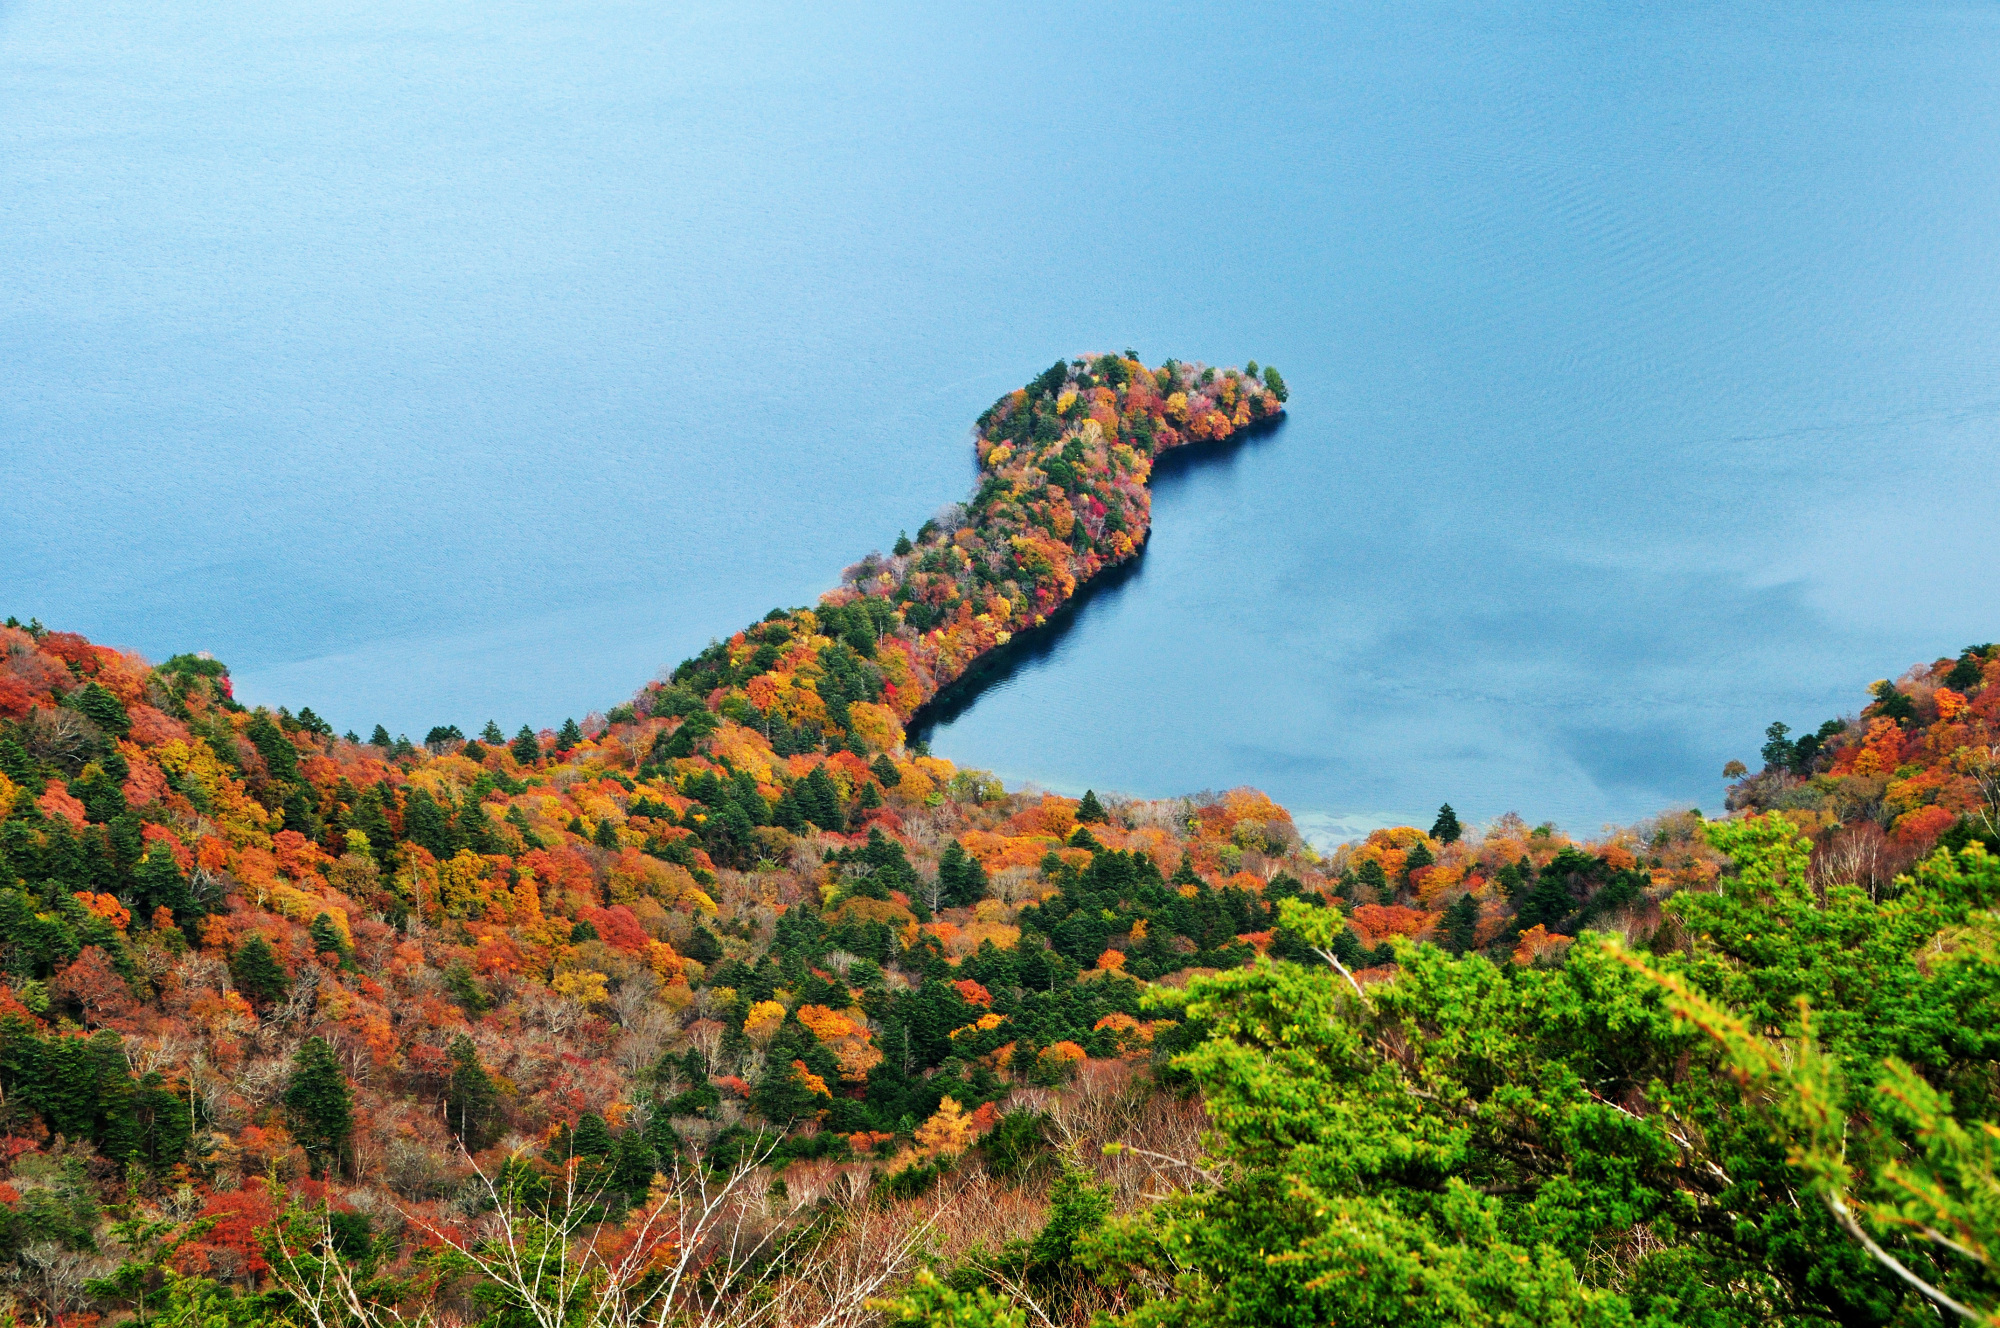 Finger lake: High up in Nikko National Park, Lake Chuzenji is pictured with its autumn coat on. | GETTY IMAGES